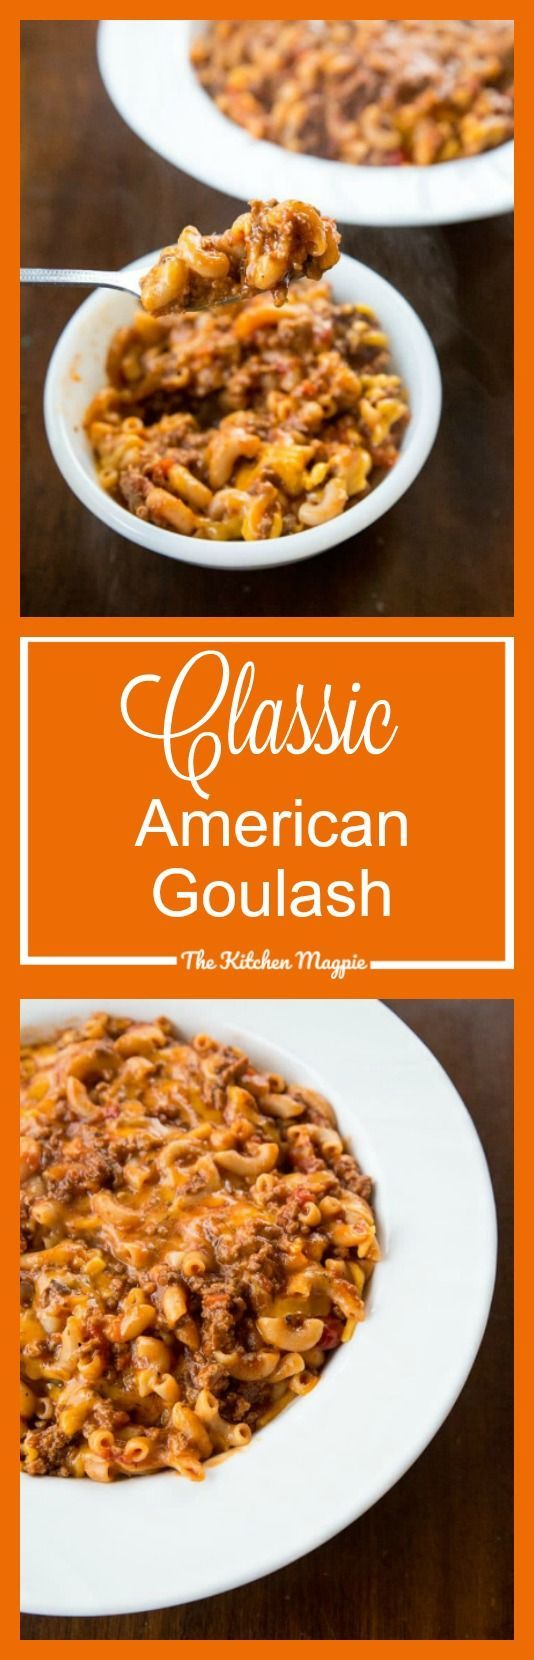 Classic American Goulash - The Kitchen Magpie